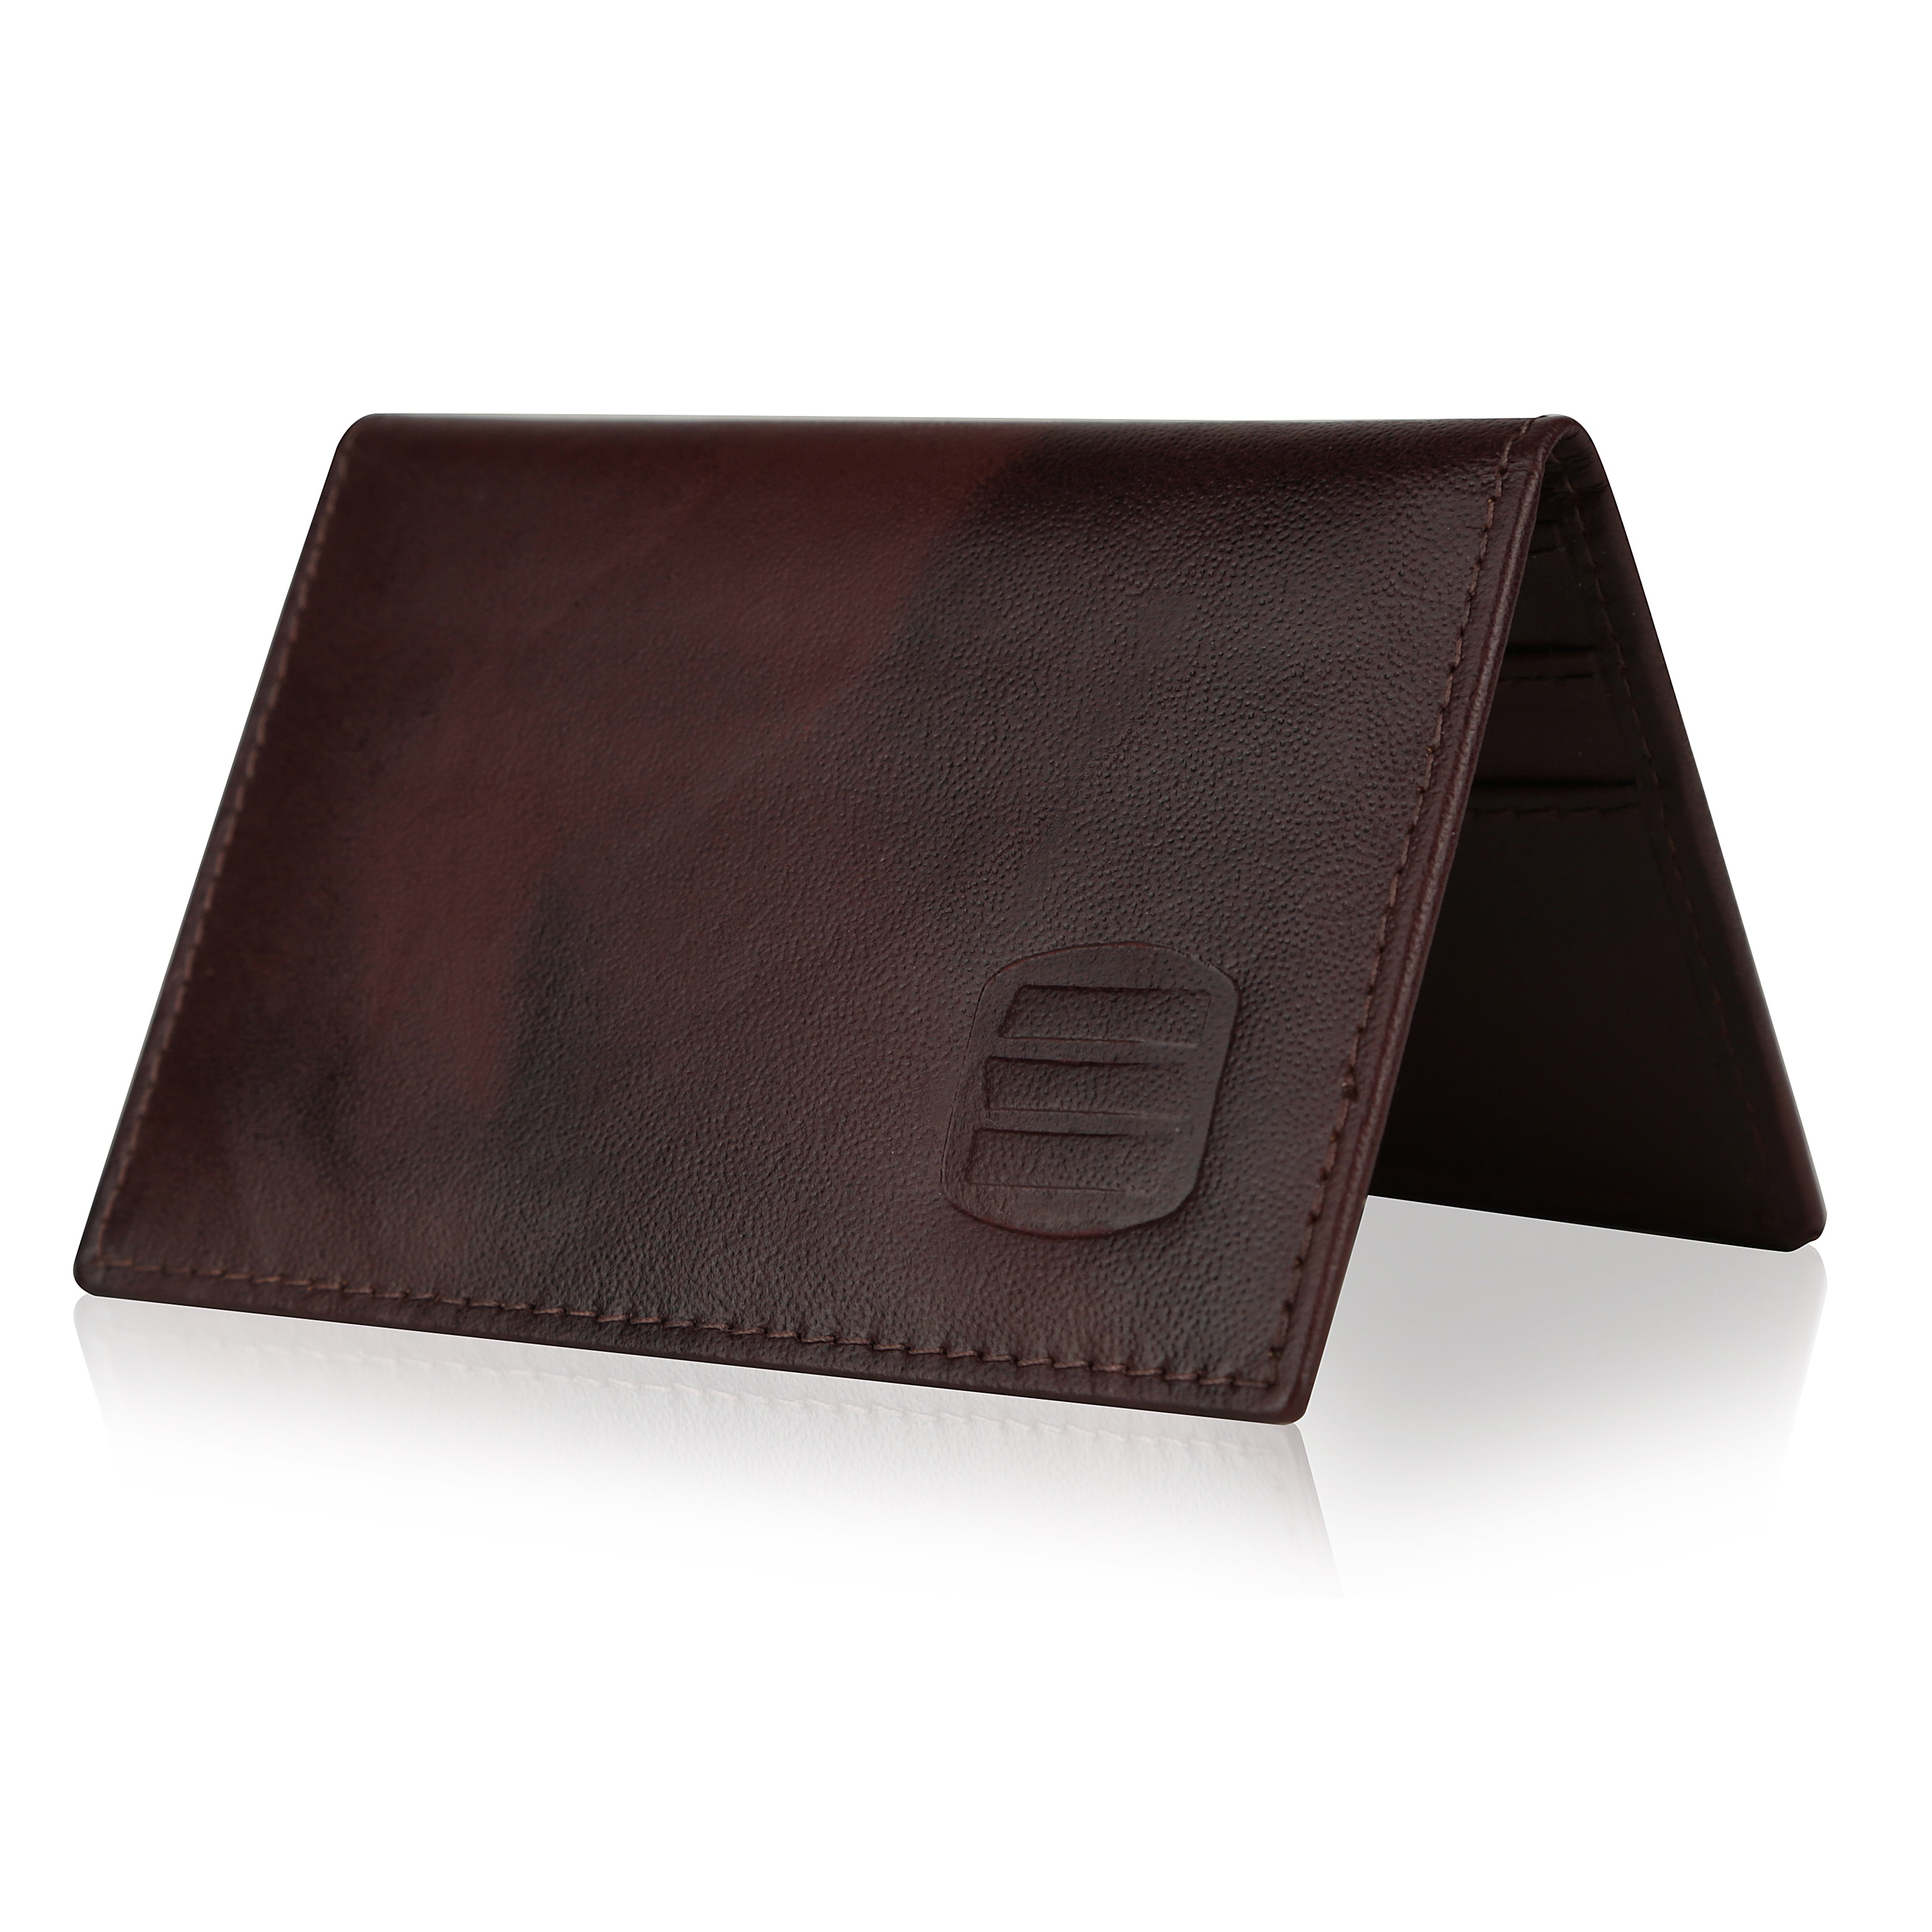 753b0e3e2a0 Suvelle WR100 Men's Slim Leather RFID Card Thin Minimalist Wallet - S